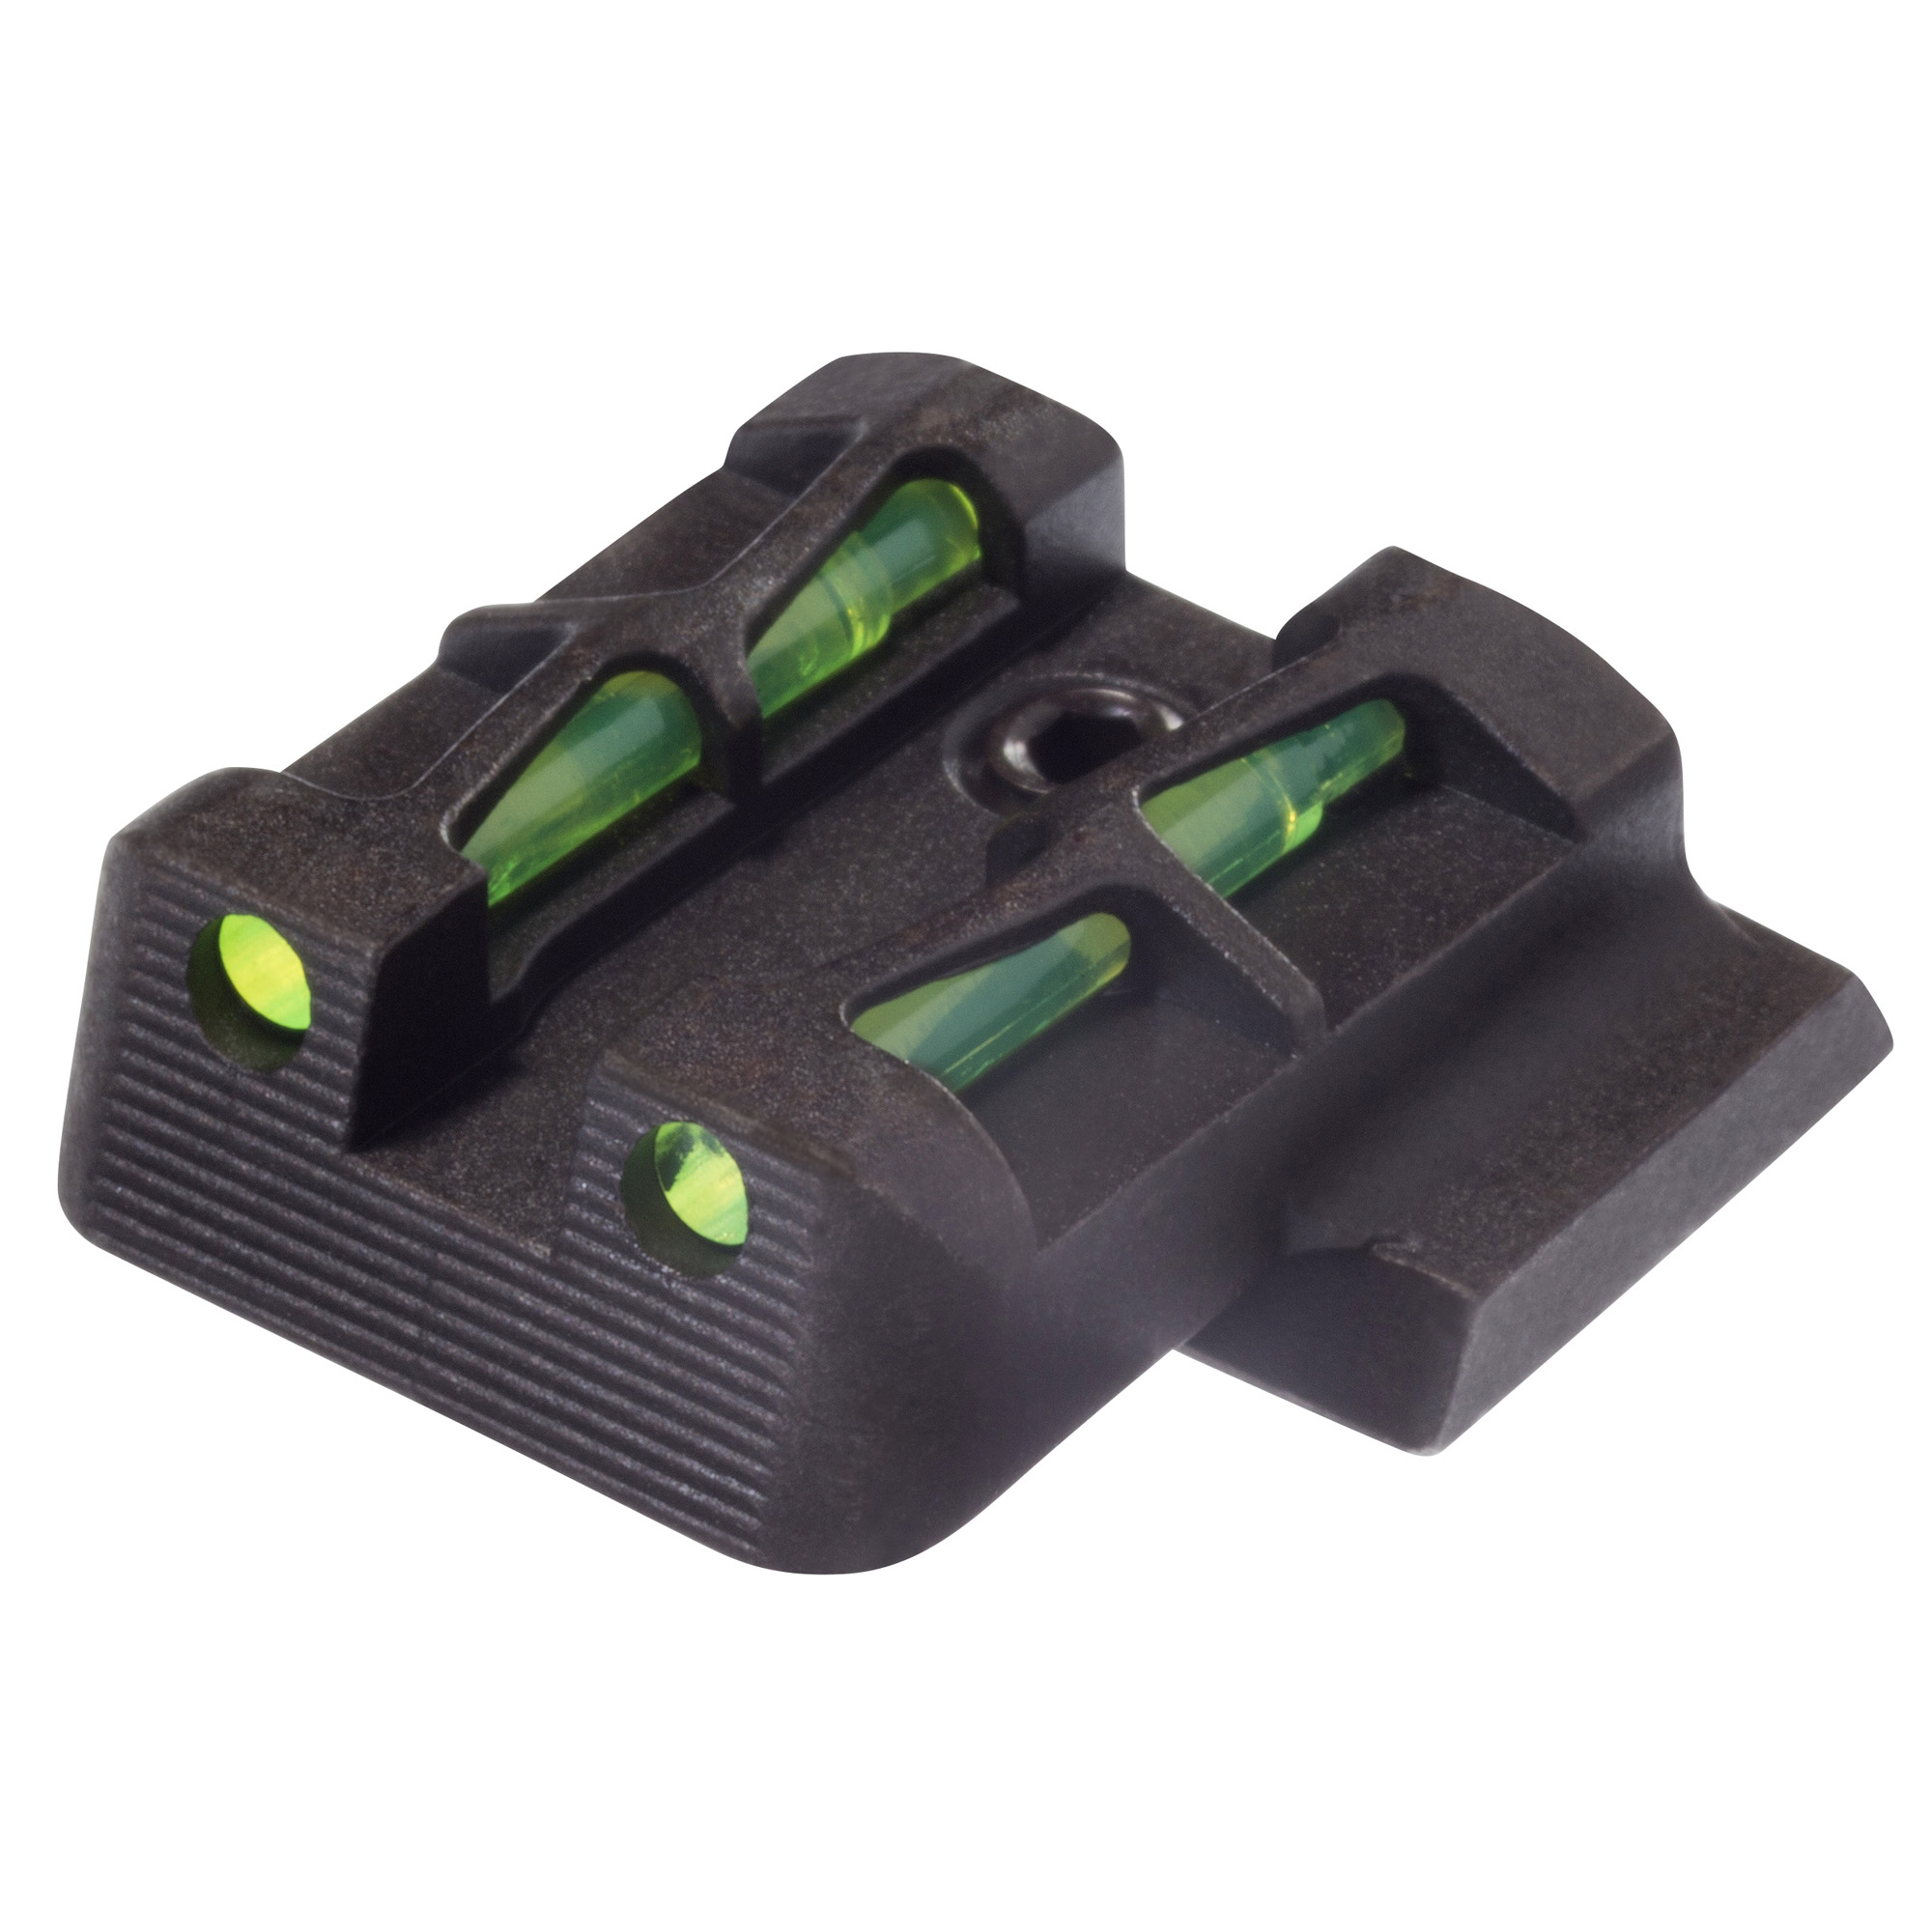 Hiviz S&w M&p Shield Interchange Pip